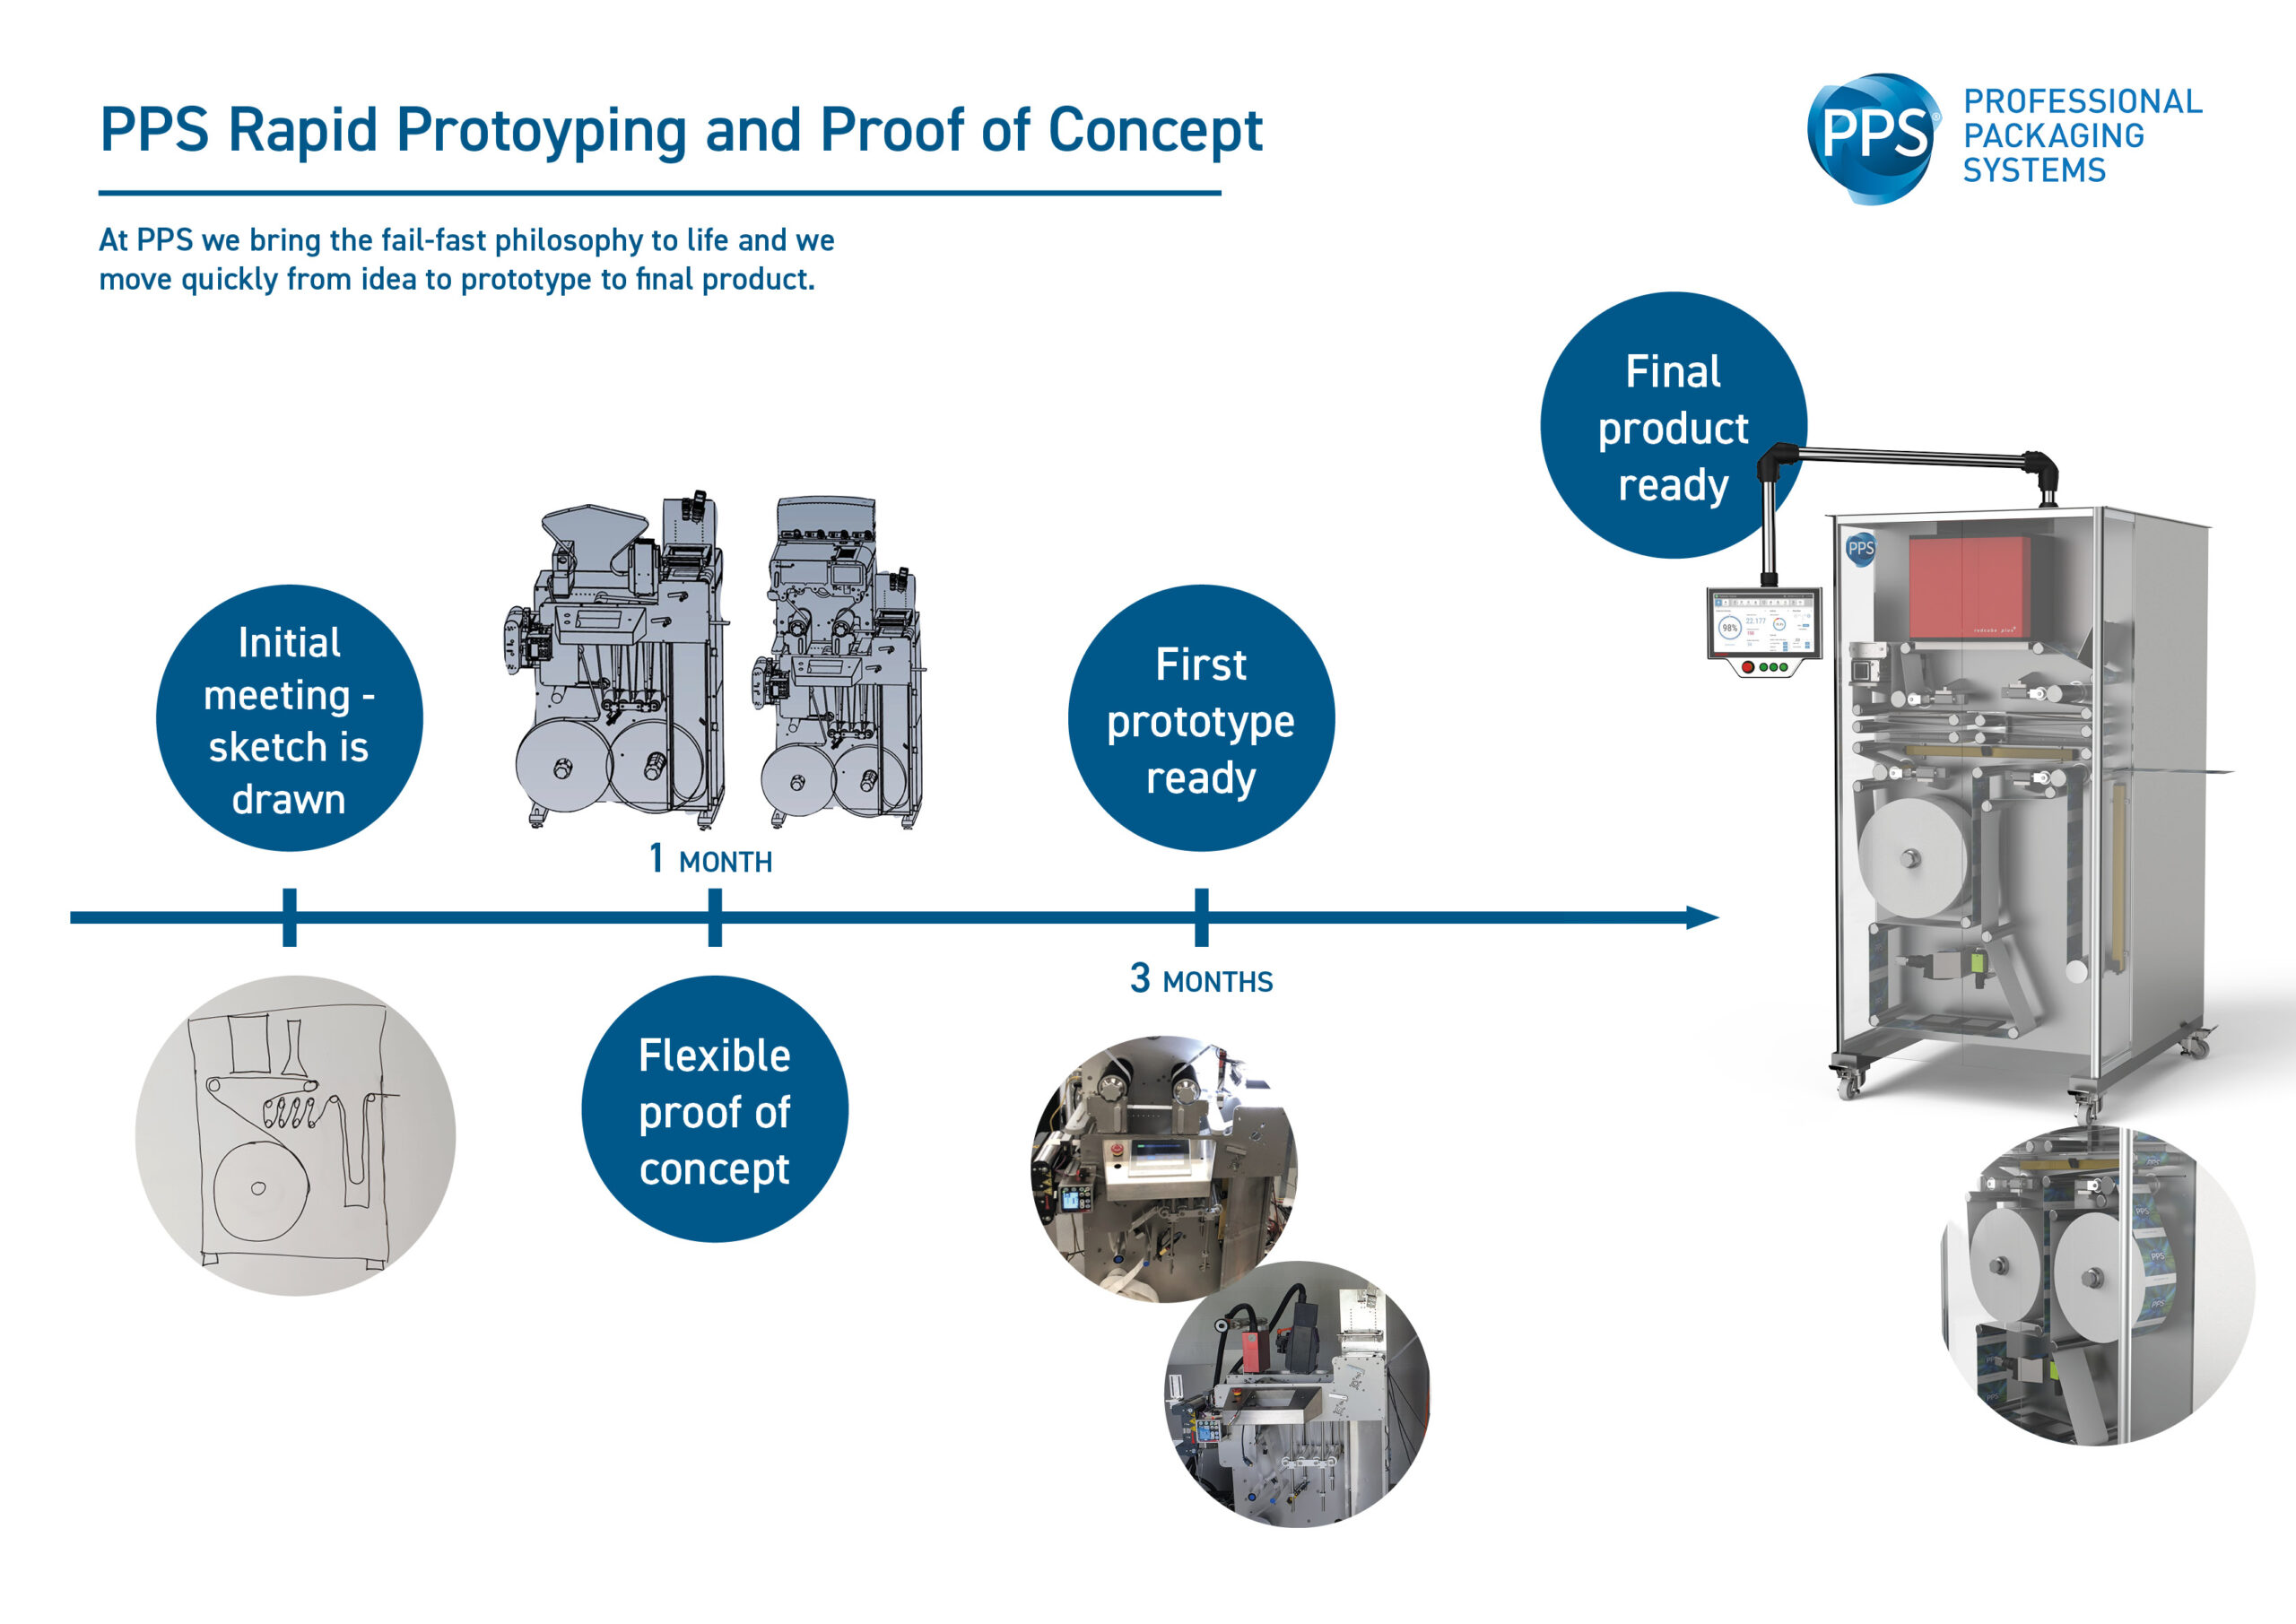 PPS Rapid Prototyping and Proof of Concept